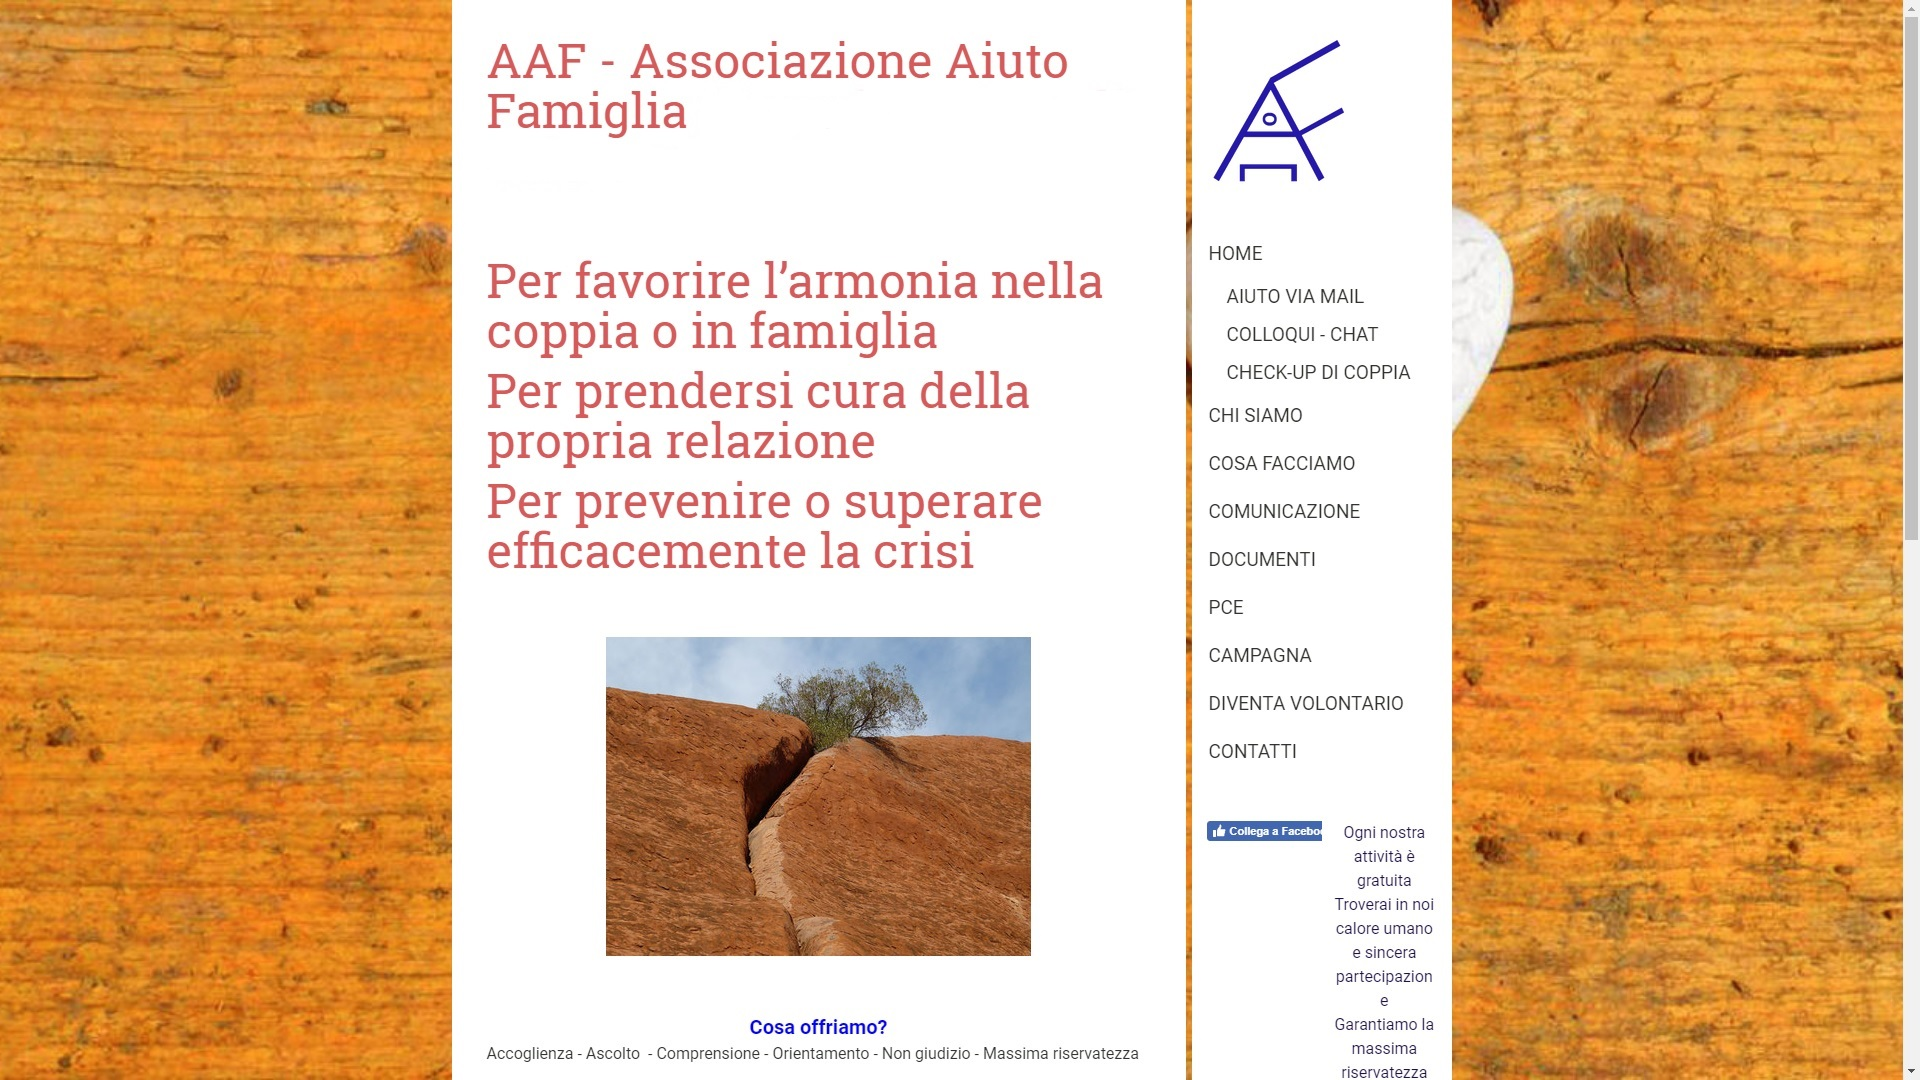 Sito AAF nel 2018